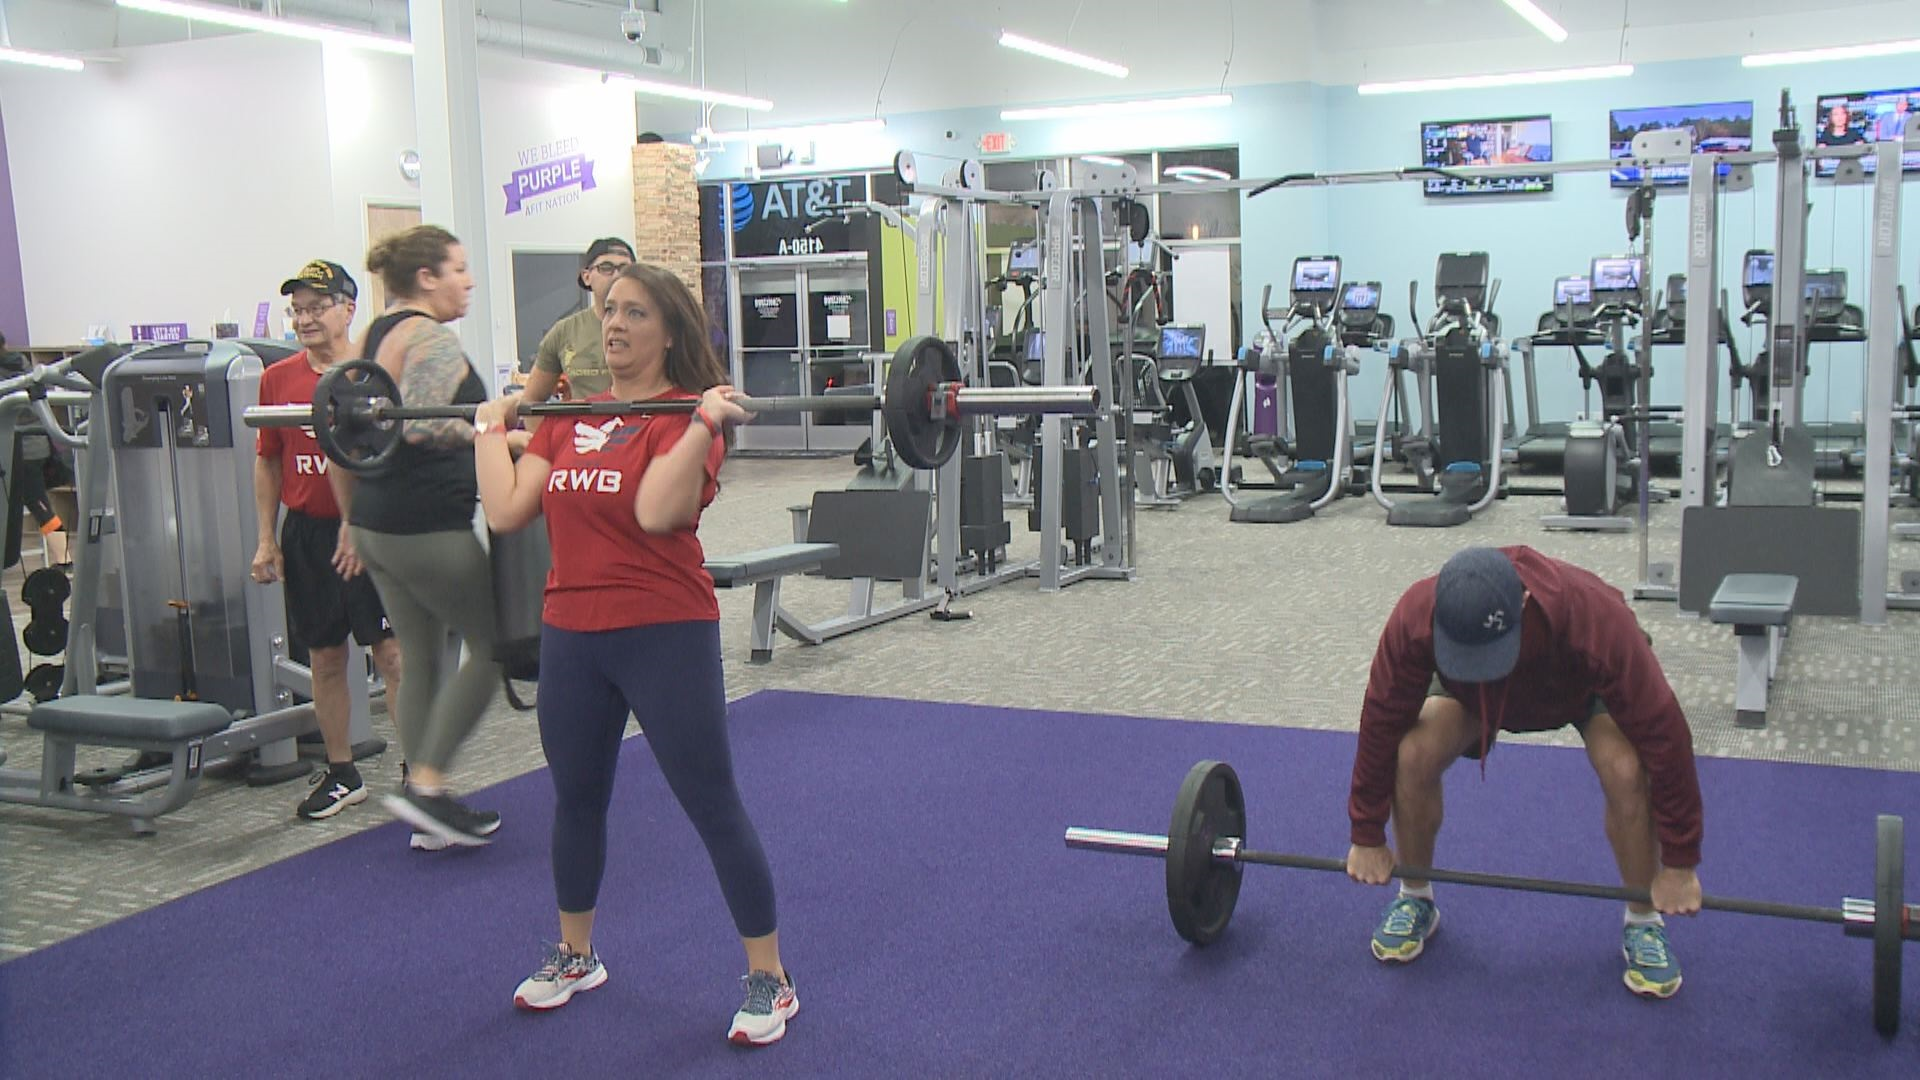 Team Rwb Hosts Special Fitness Workout For Veterans Day